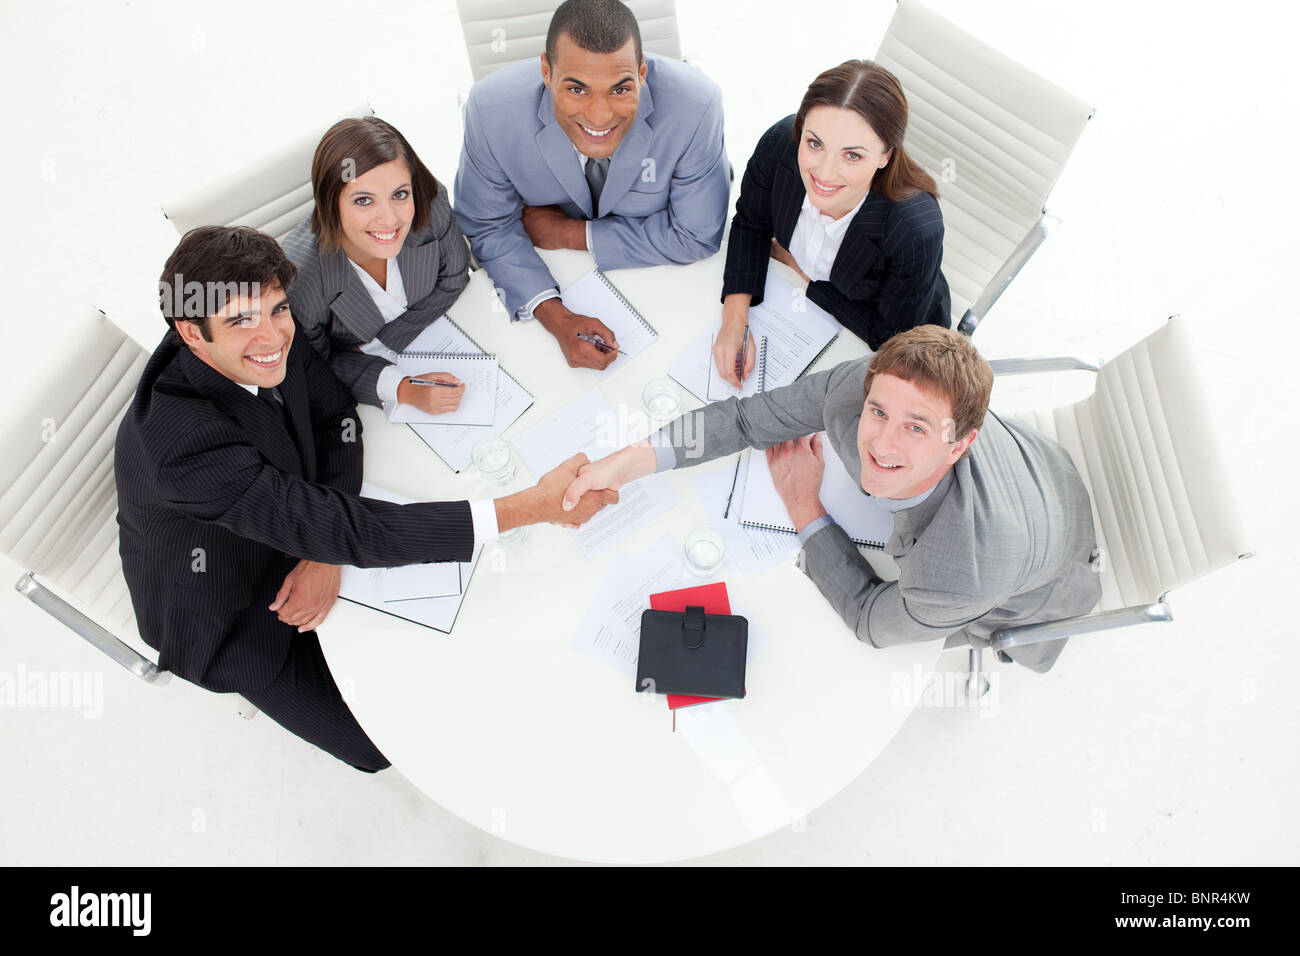 Business people greeting each other stock photo 30626733 alamy business people greeting each other m4hsunfo